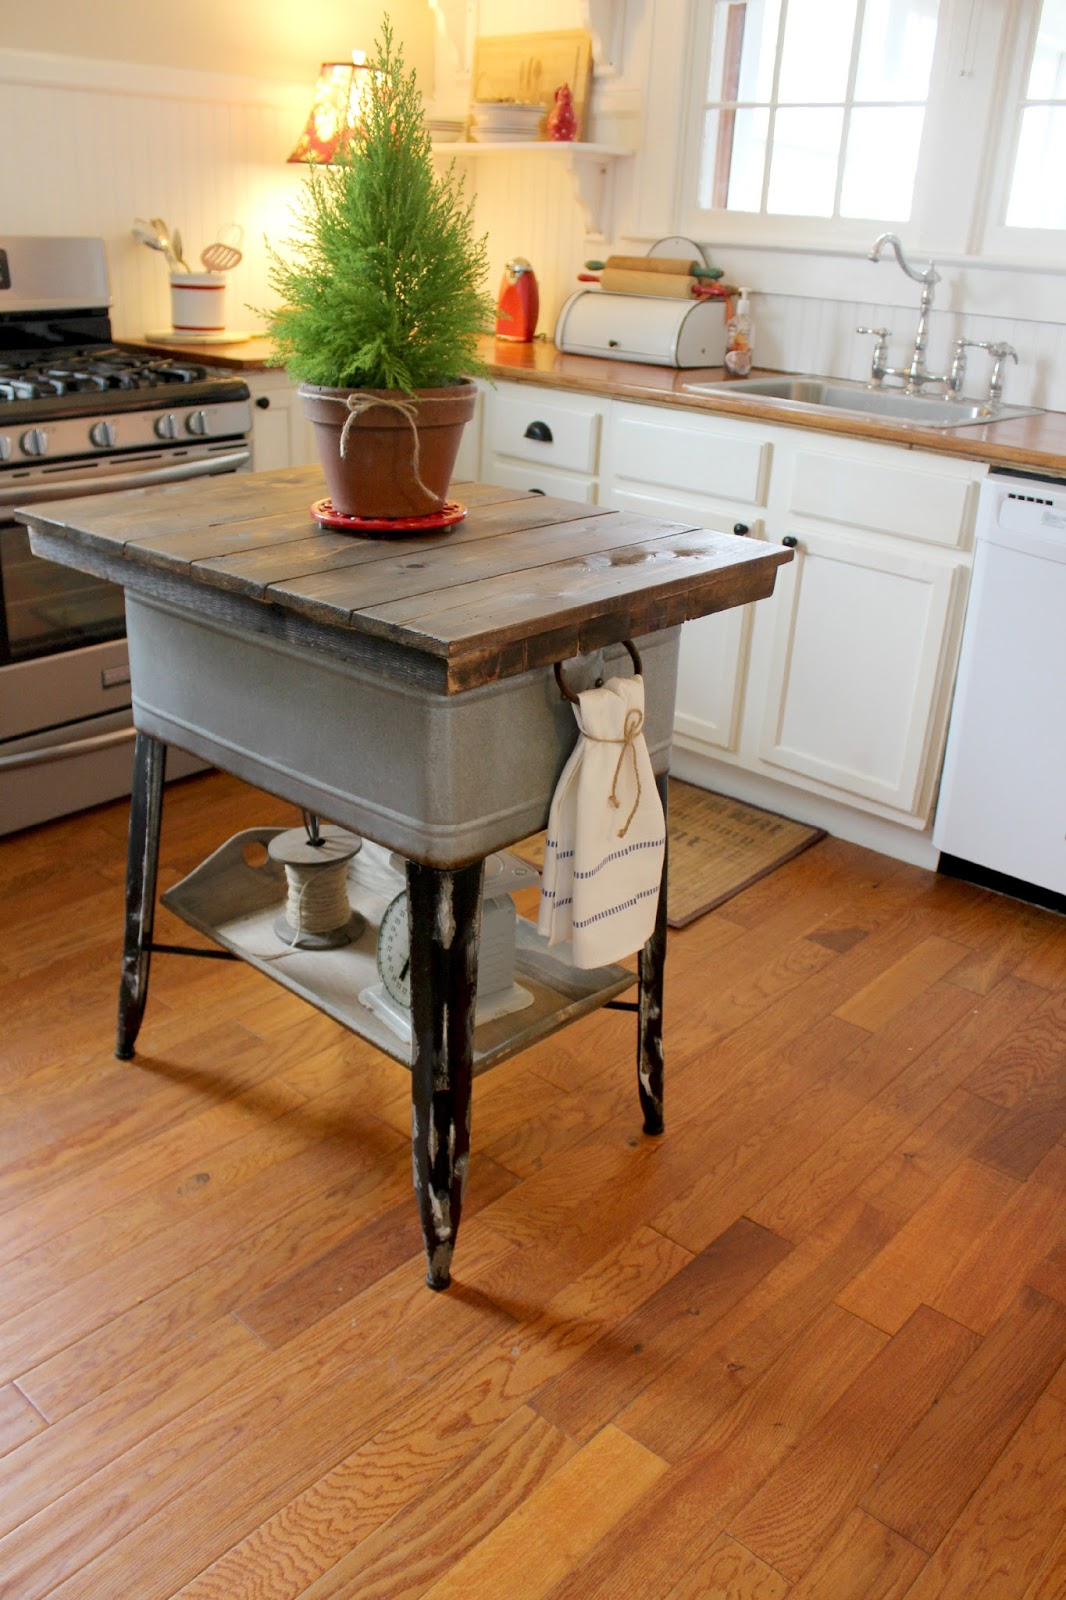 Turn a wash tub into a kitchen island